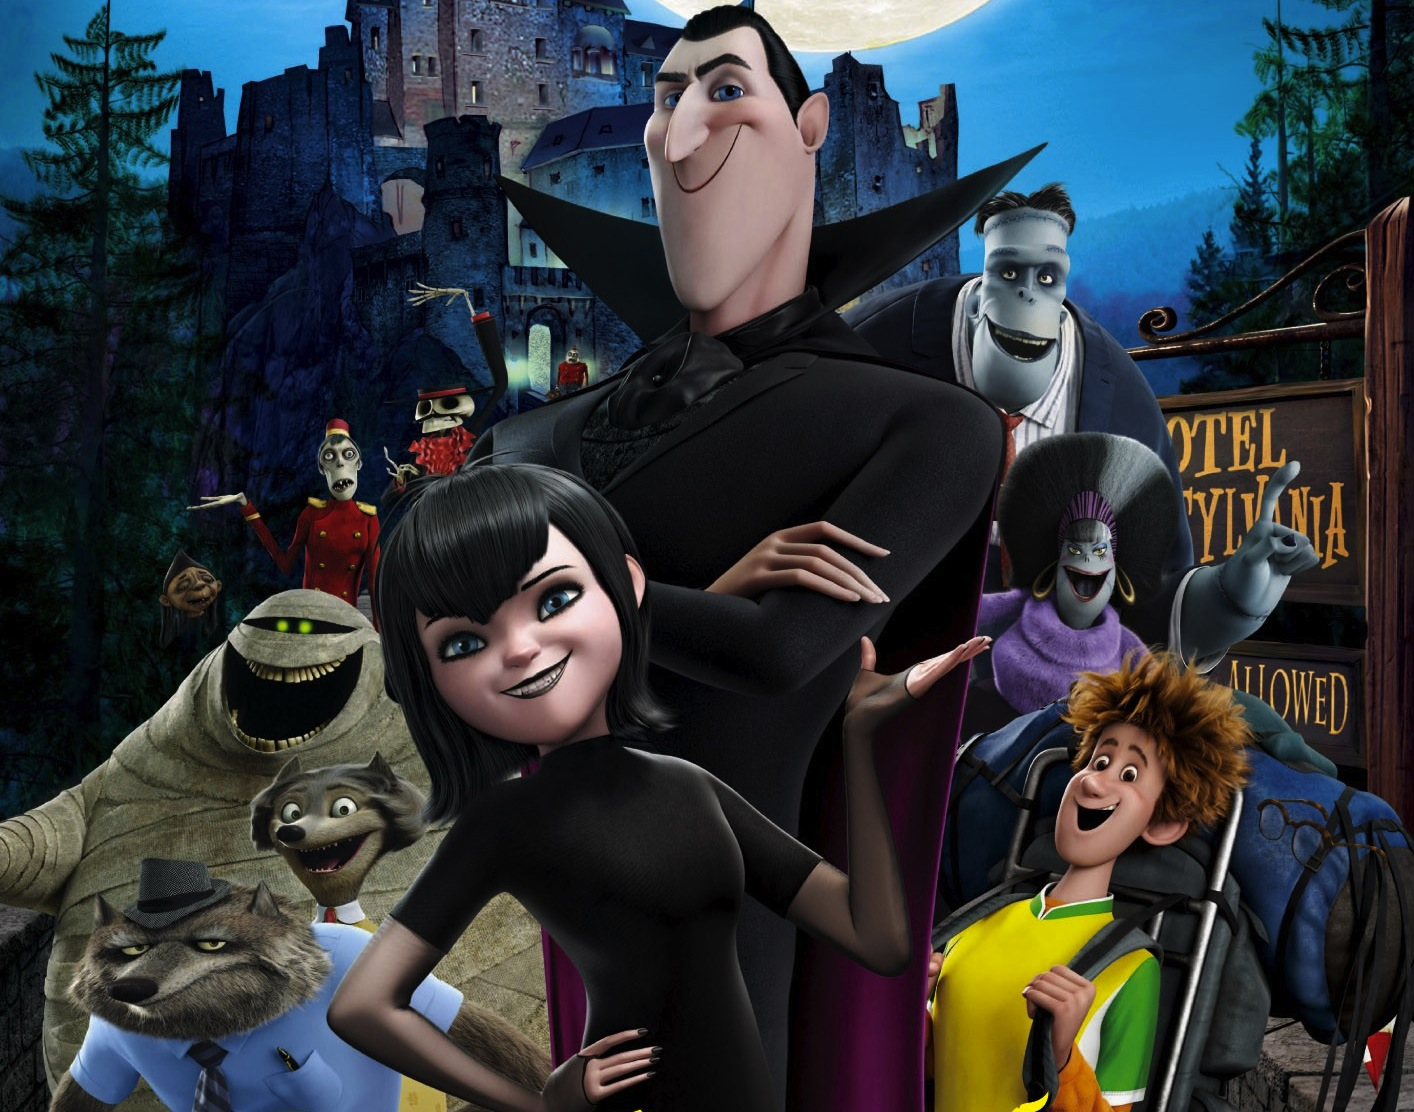 It's just an image of Agile Hotel Transylvania Pictures